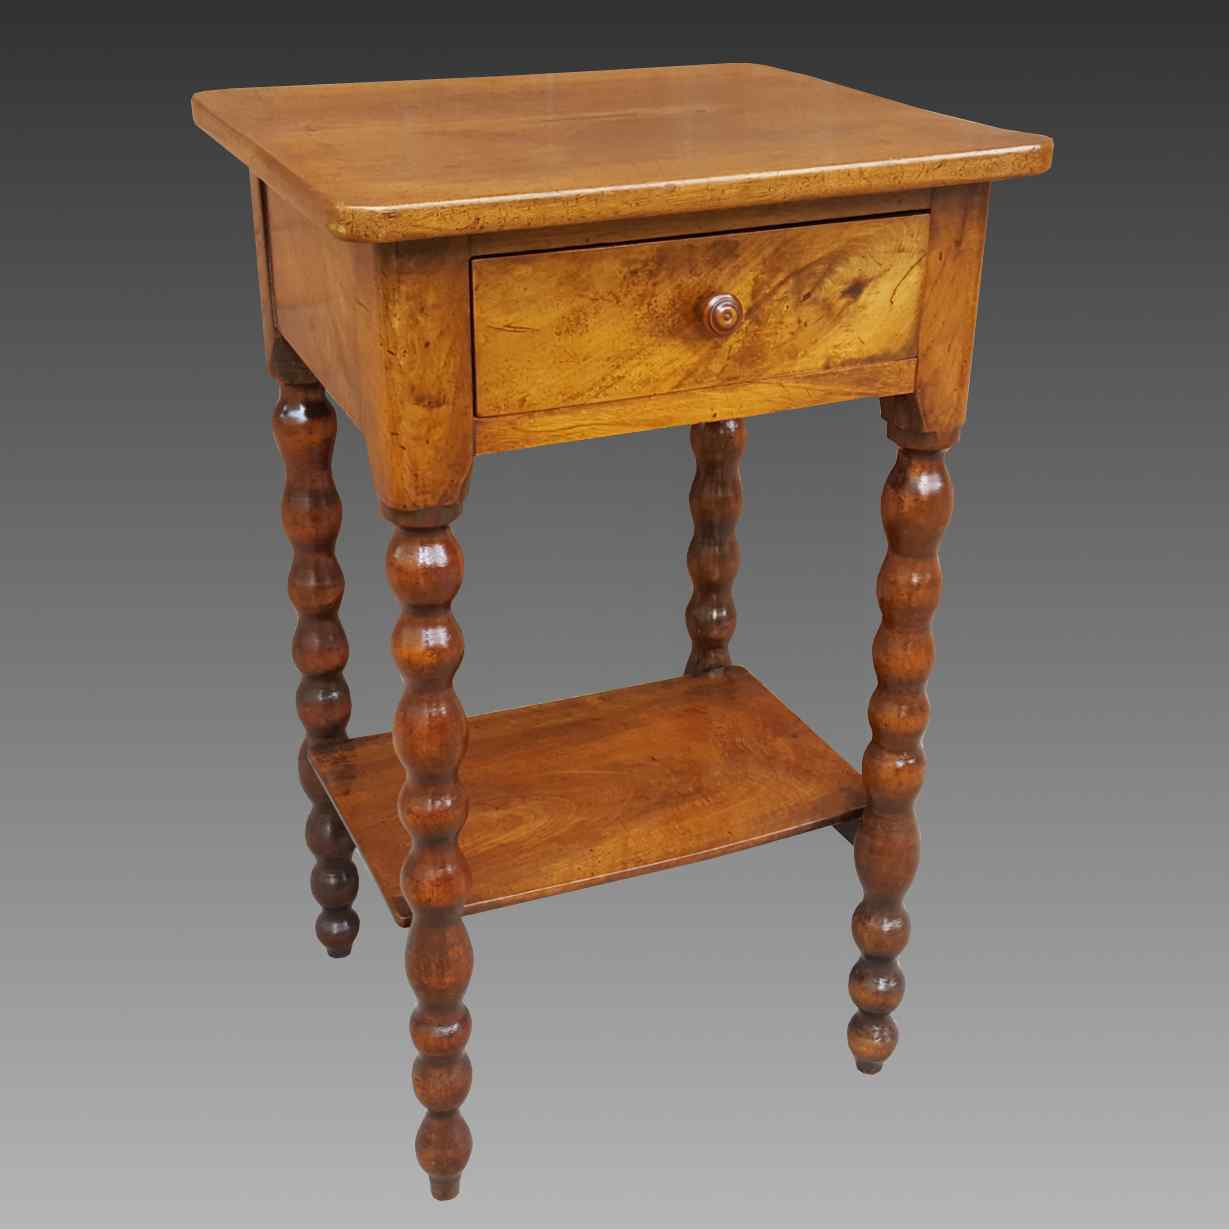 Antique small Table Bedside in walnut - 19th century